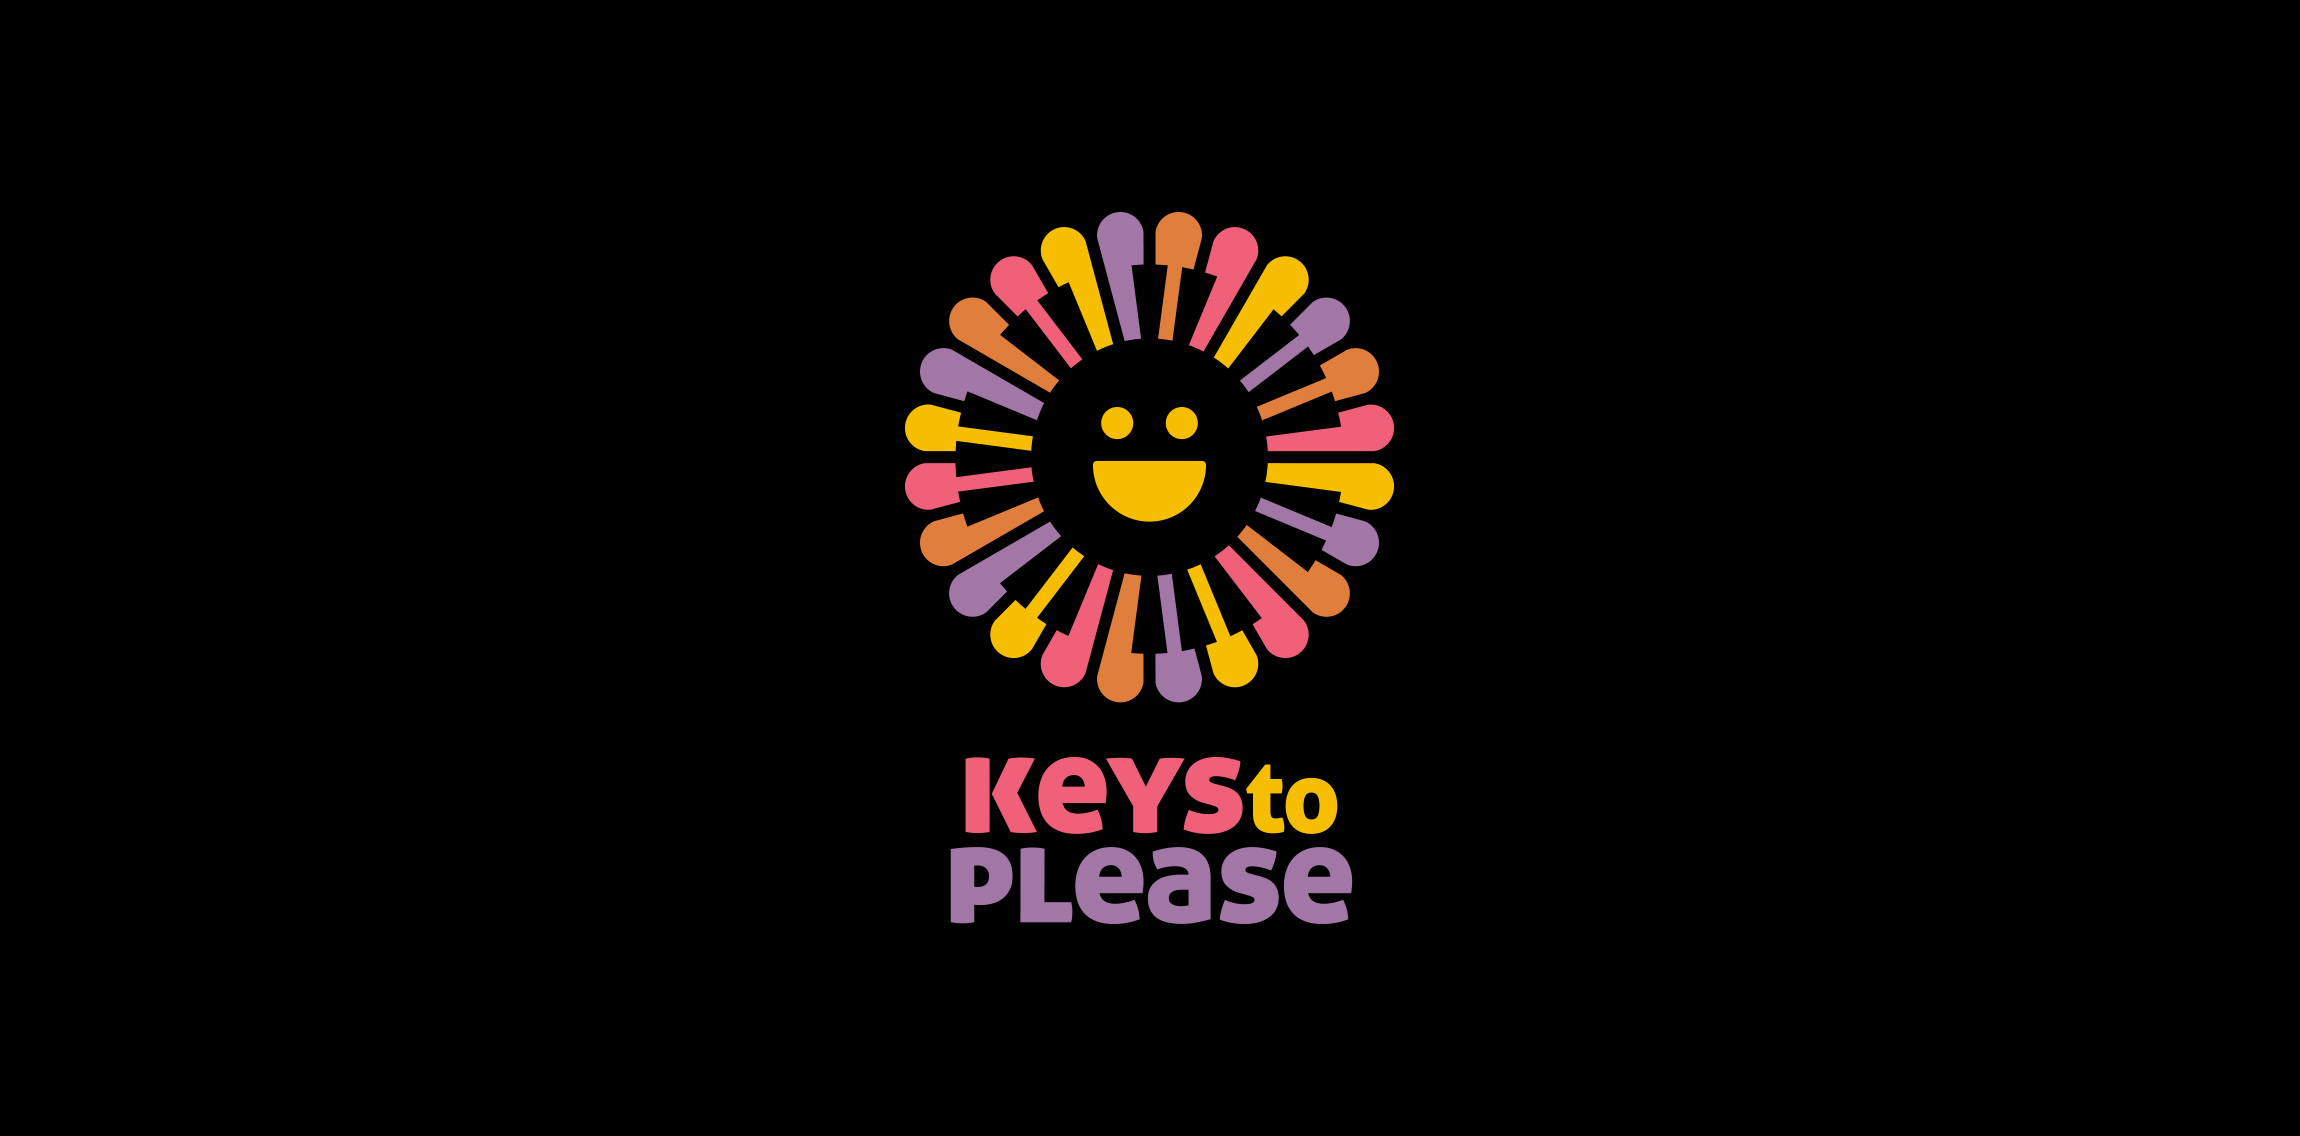 Keys to Please